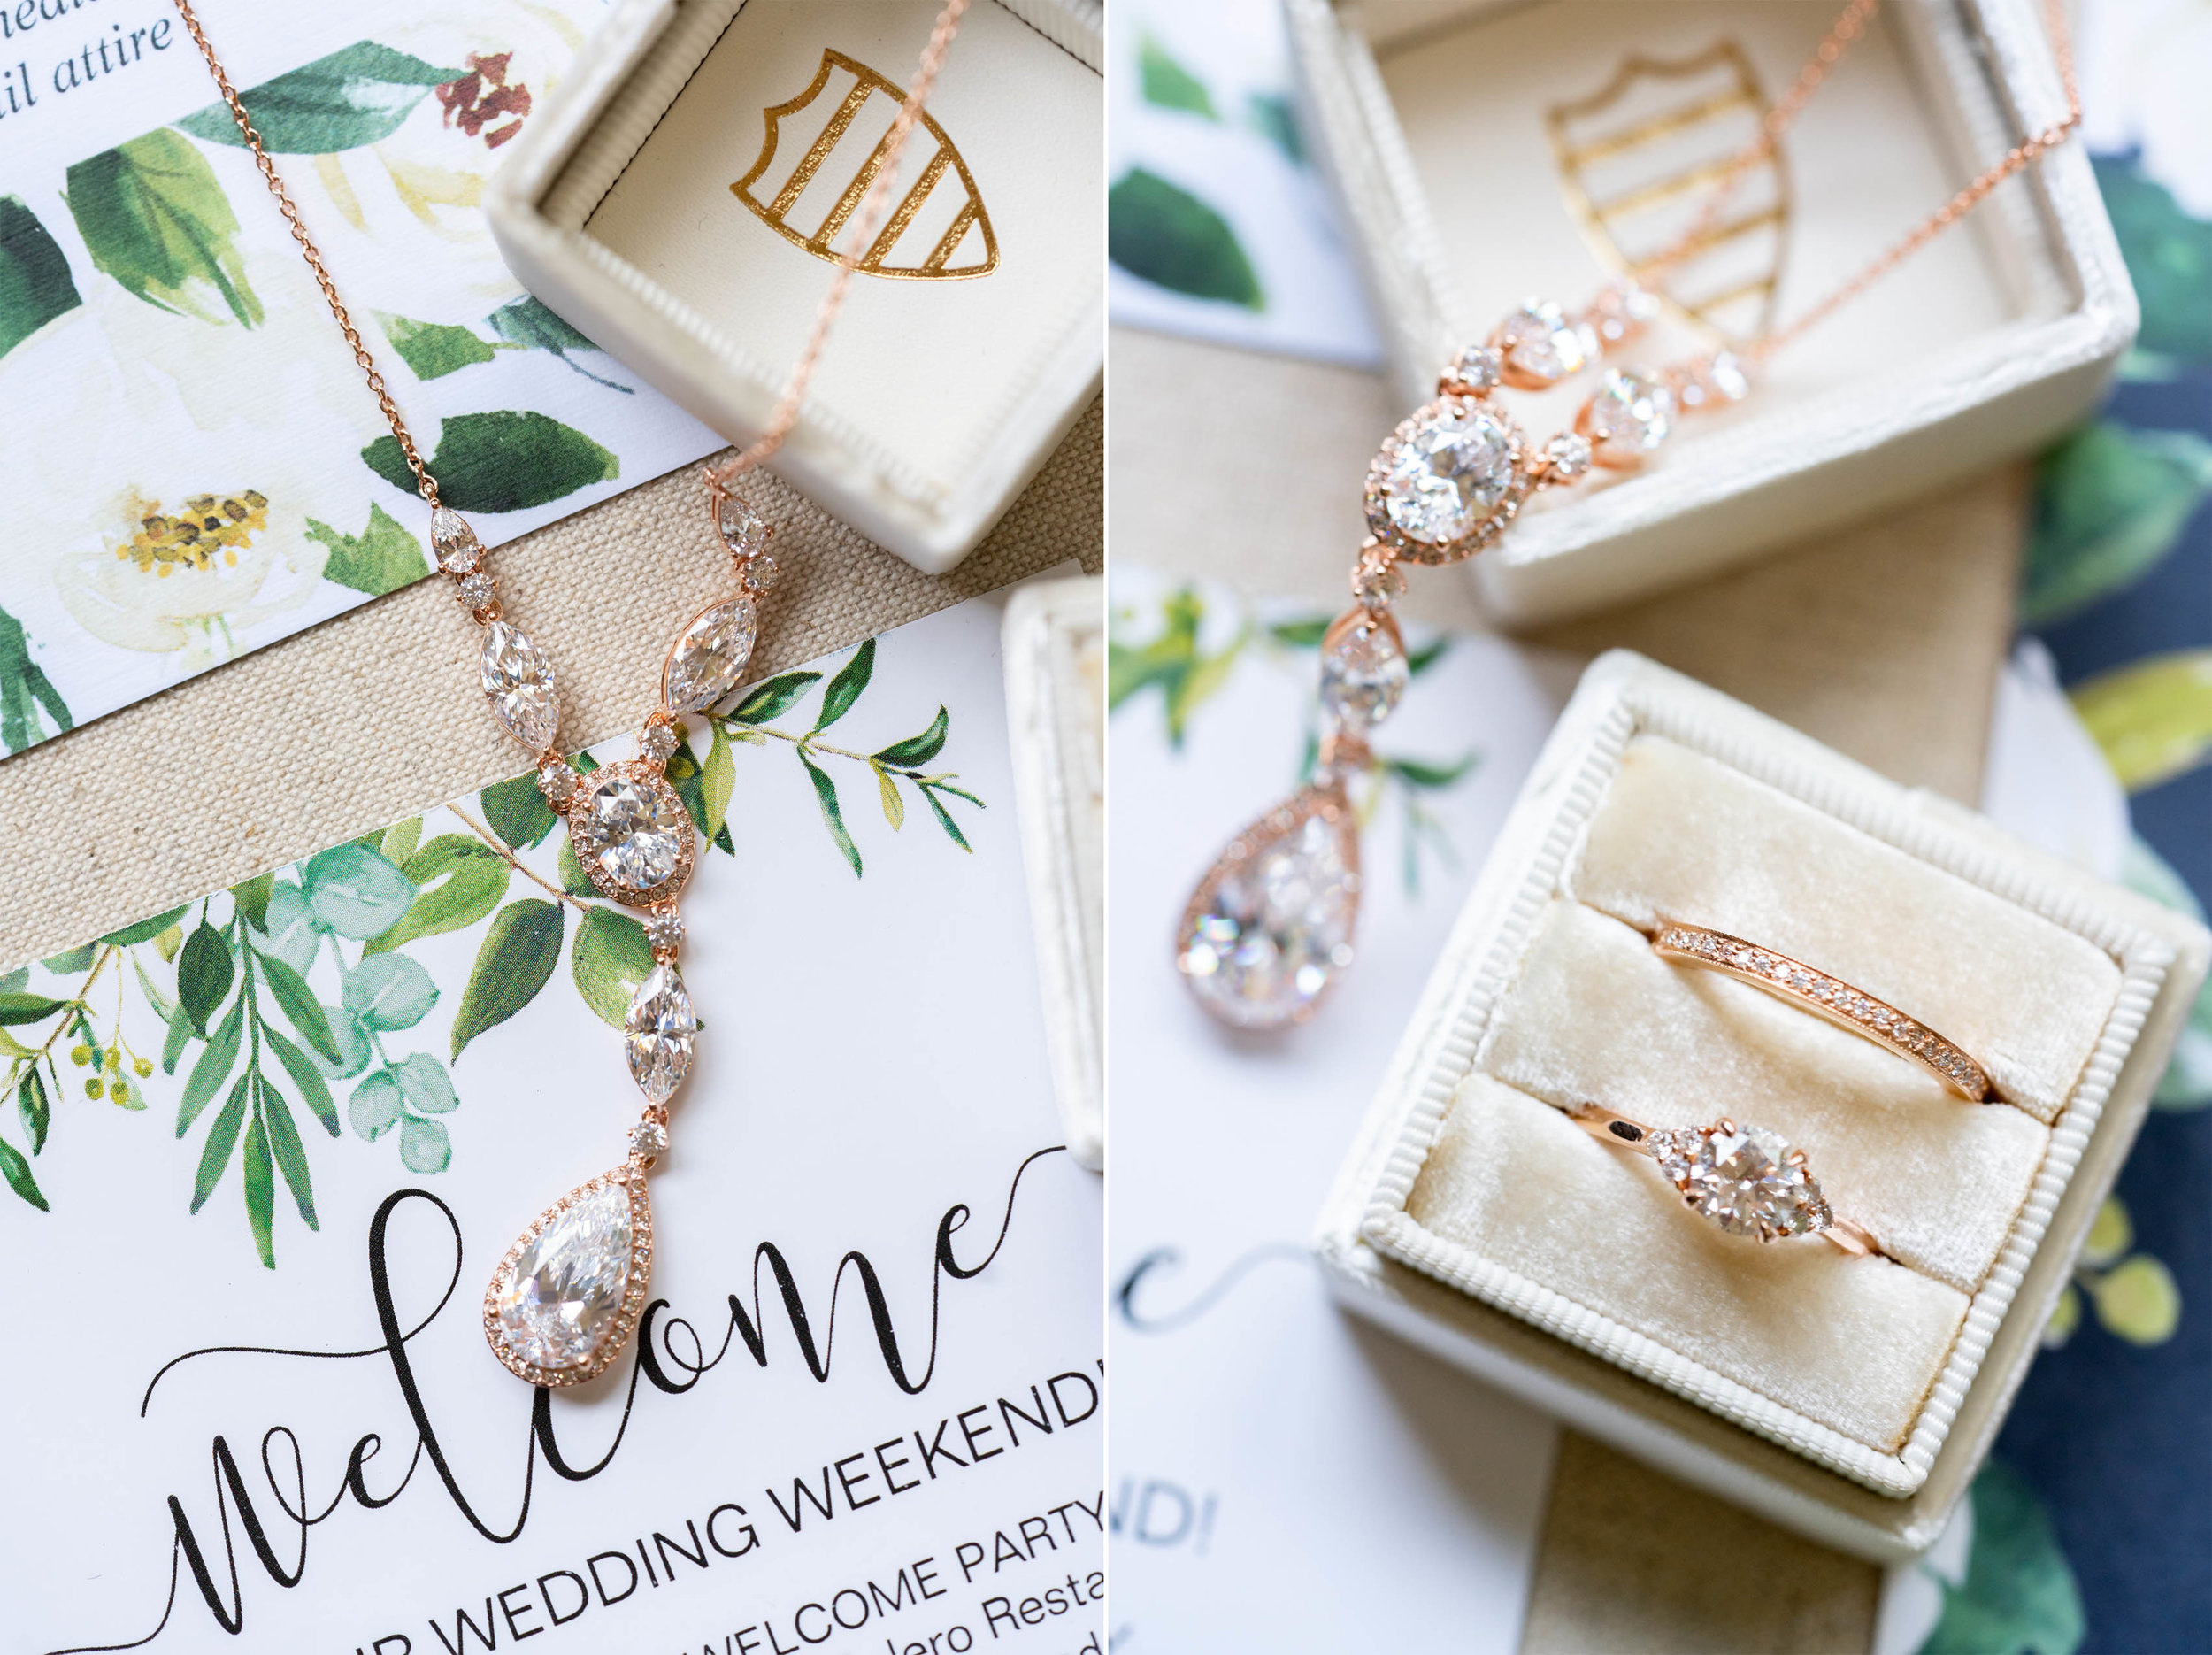 Mrs Box and double in margaery with rose gold and invitation set